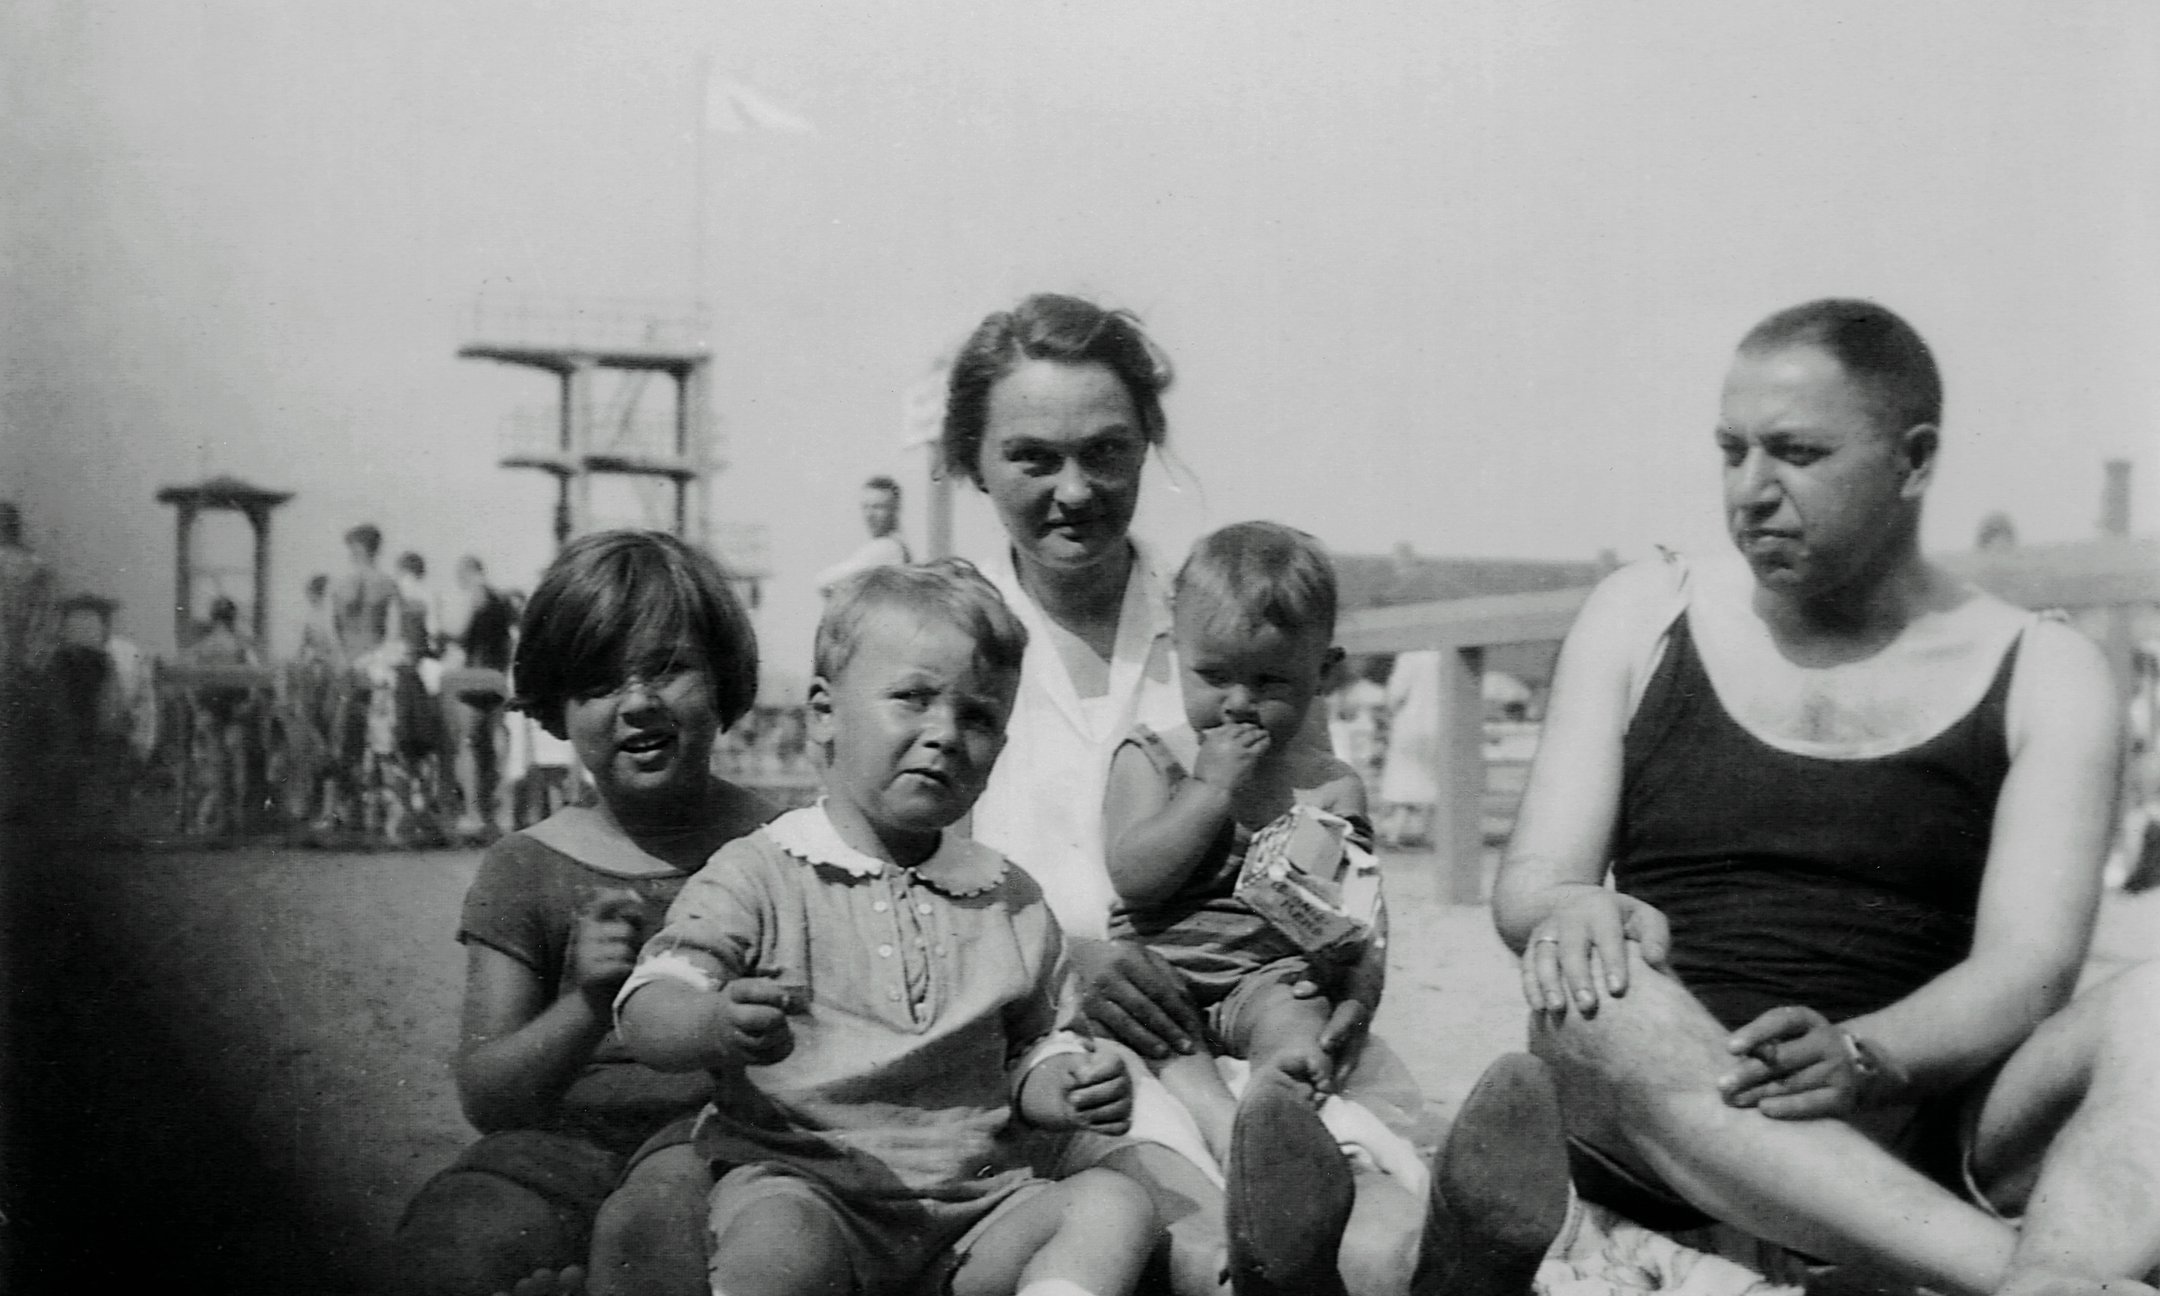 Peter van Pels on the beach with the Jacobson family, around 1927. From left to right: Elsa Jacobson, Peter van Pels, Maria (nanny) with Ralph Jacobson on her lap, father Ernst Jacobson.